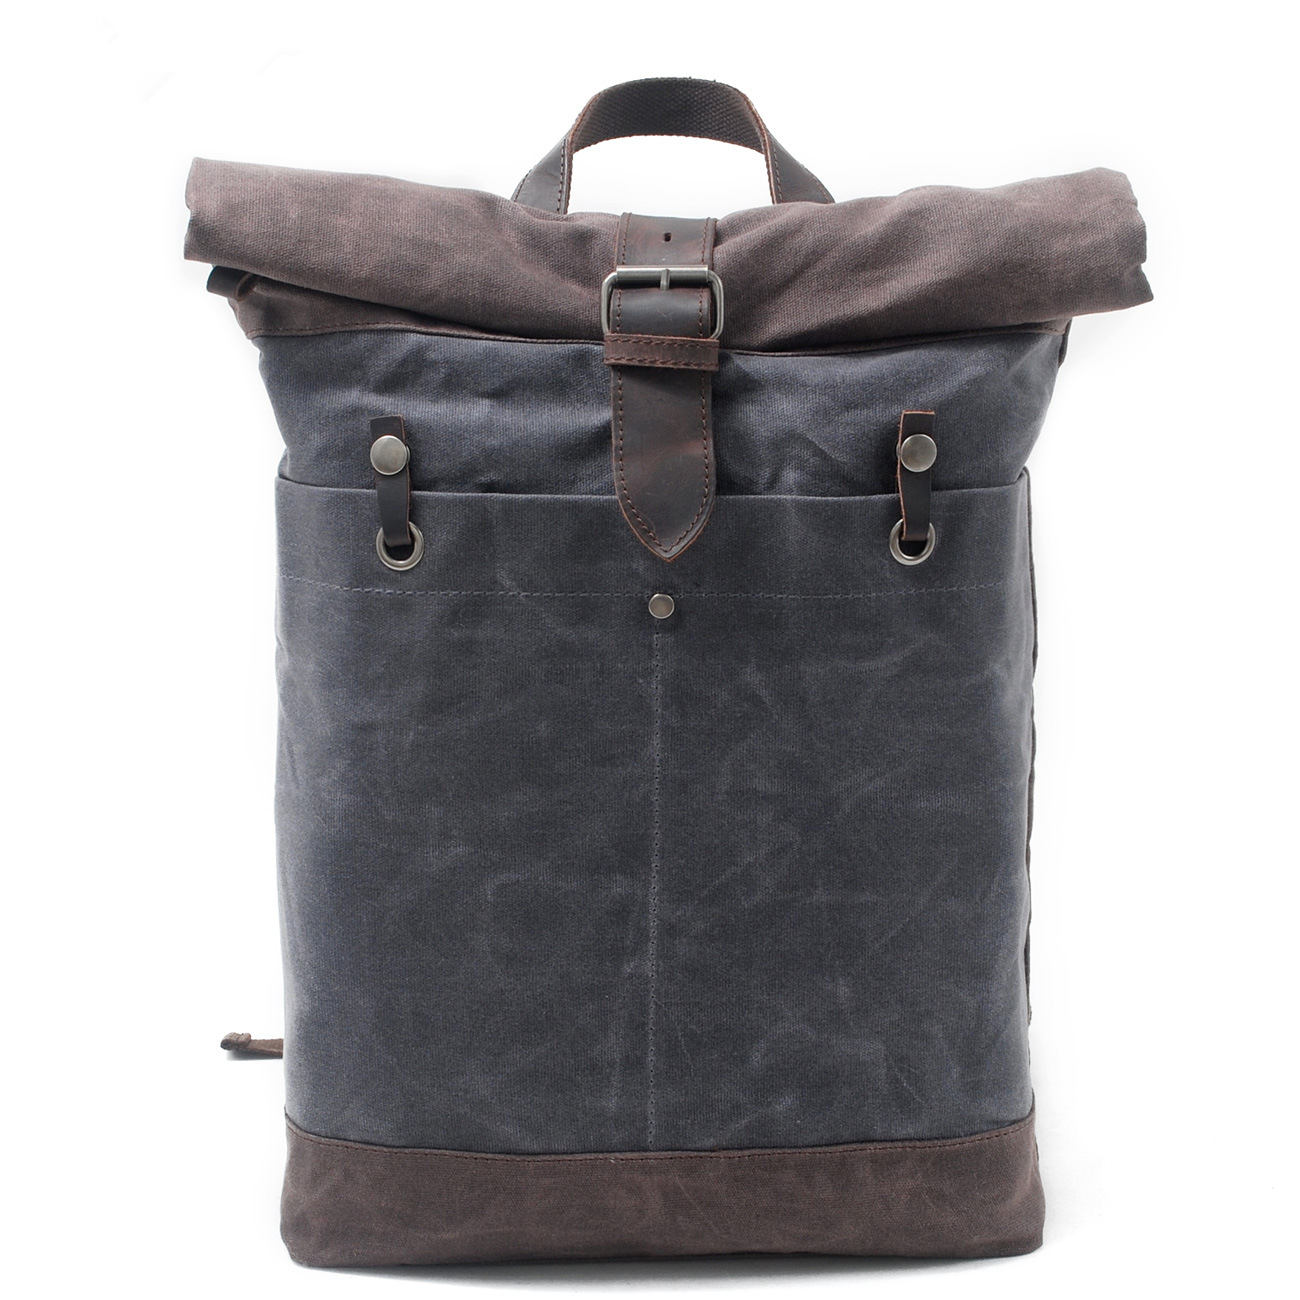 Melodycollection Man OilSkin Bags Batik Waxed Canvas Rucksack Backpack Roll up top bag men's waterproof out door travel Daypack man luxury cowboy oilskin batik waxed canvas rucksack backpack roll up top shoulder men s waterproof out door travel bag daypack